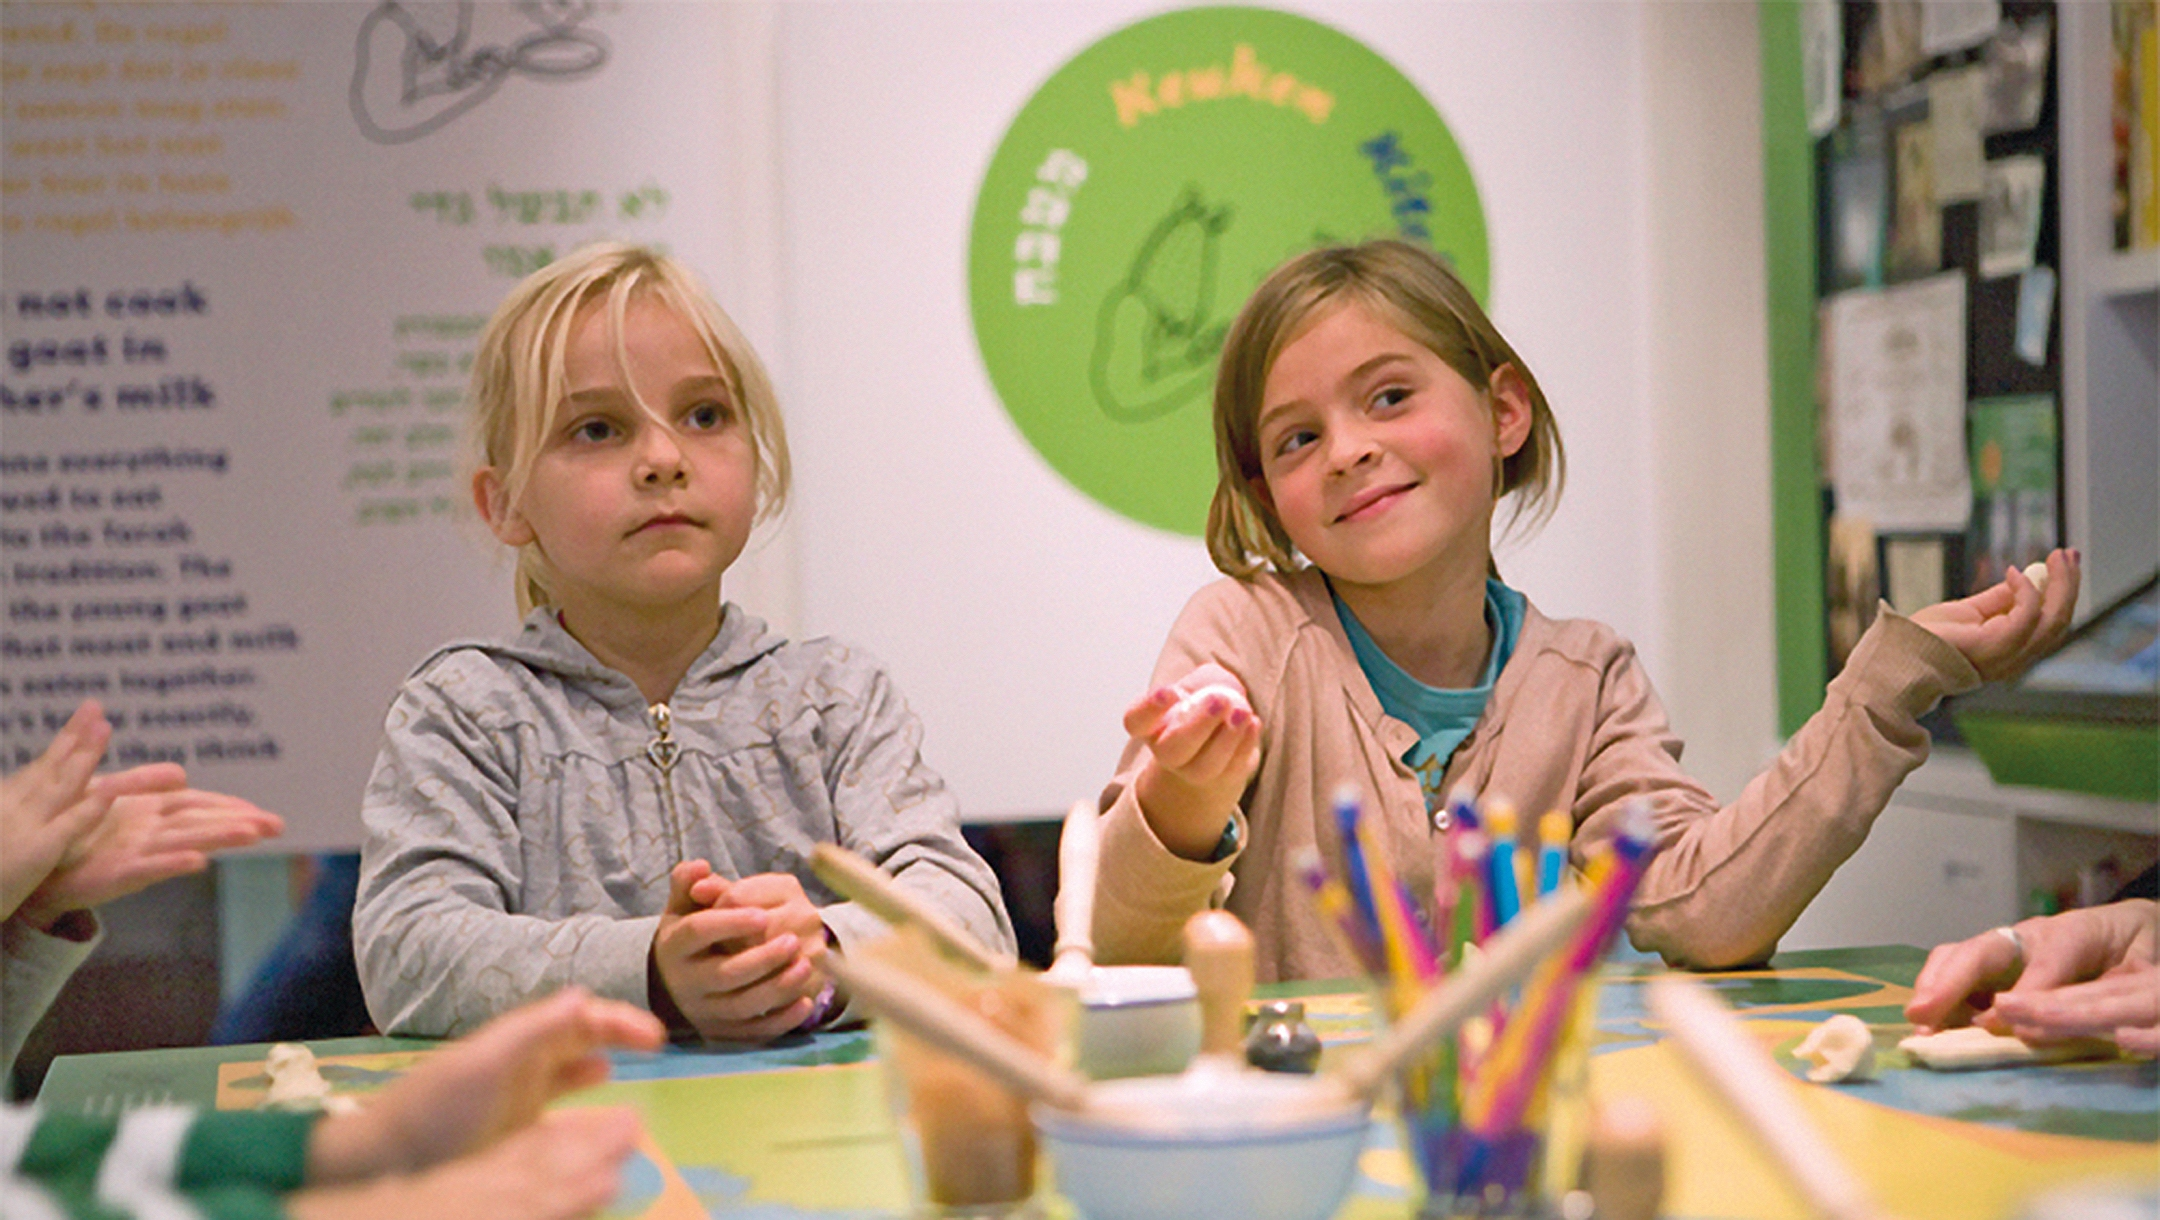 Children learning about Judaism at the Children's Jewish Museum within the Jewish Cultural Quarter of Amsterdam, the Netherlands on Sept. 25, 2008. (Ruud van Zwet)